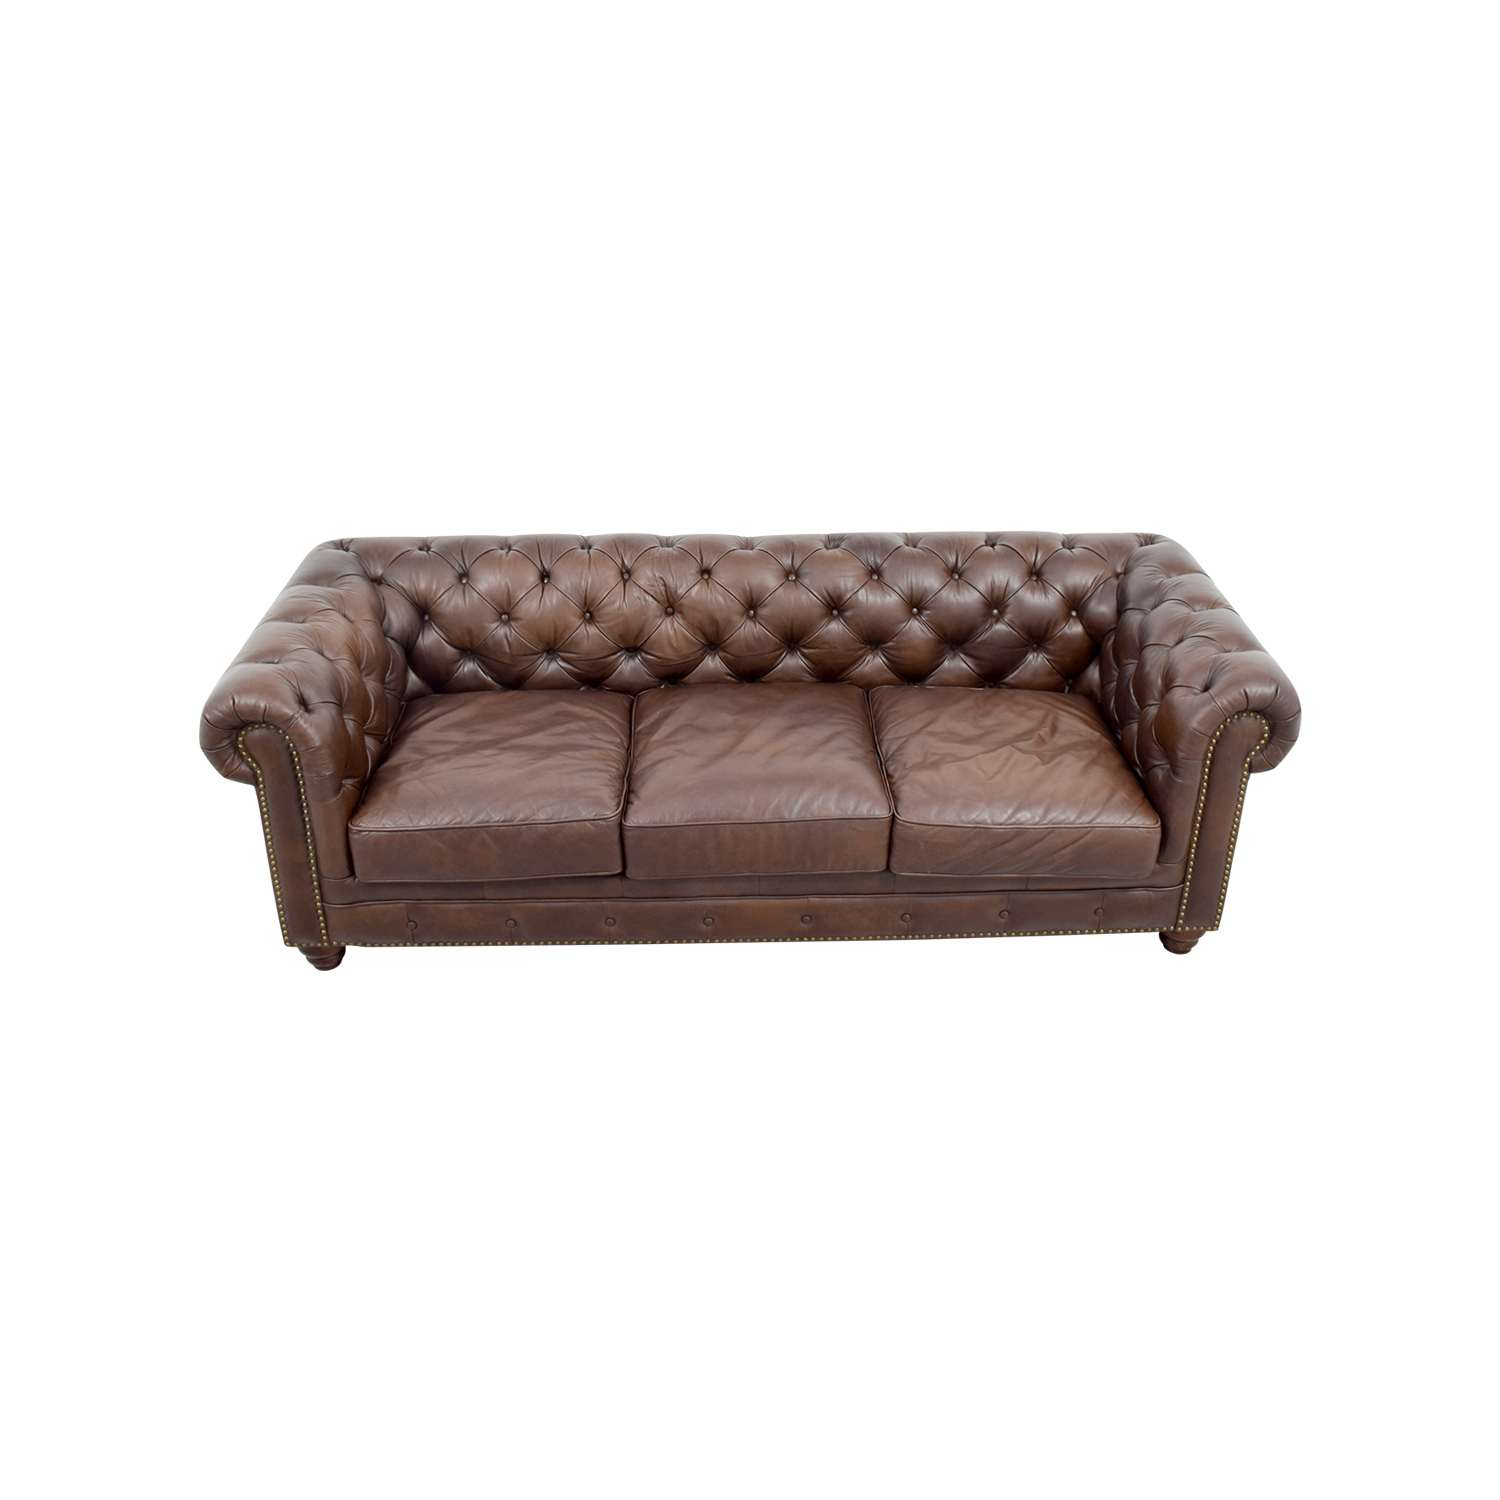 shop Raymour & Flanigan Bellanest Saddler Tufted Leather Sofa Raymour & Flanigan Classic Sofas